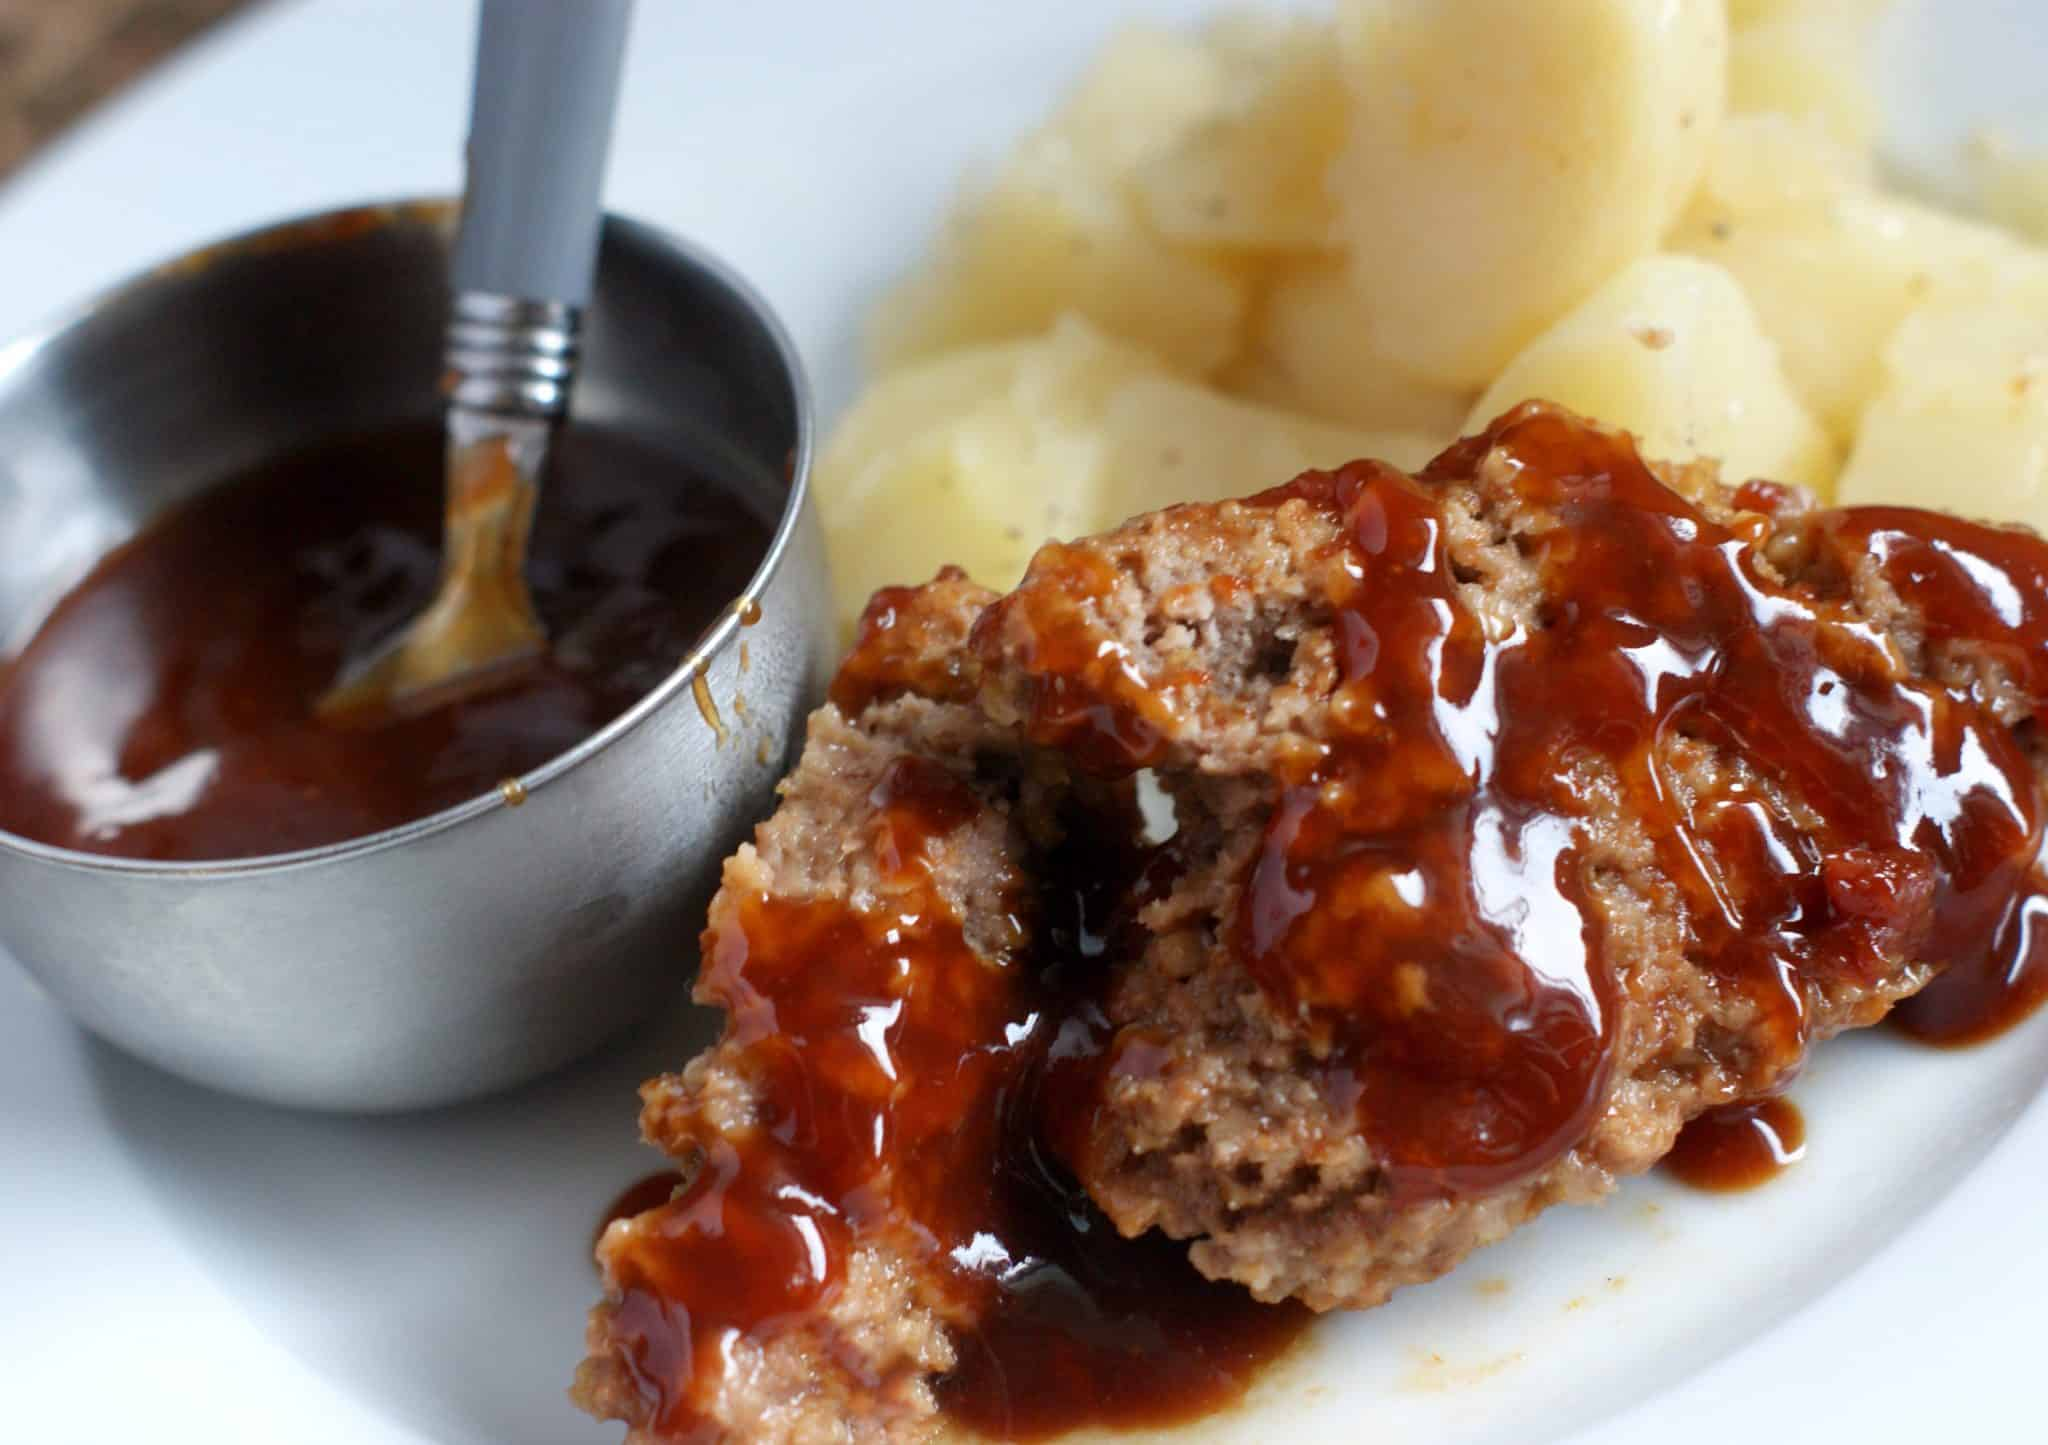 Meatloaf potatoes and sauce - Easy Instant Pot Meatloaf & Potatoes recipe - #recipe #dinner #mealplanning #instantpot